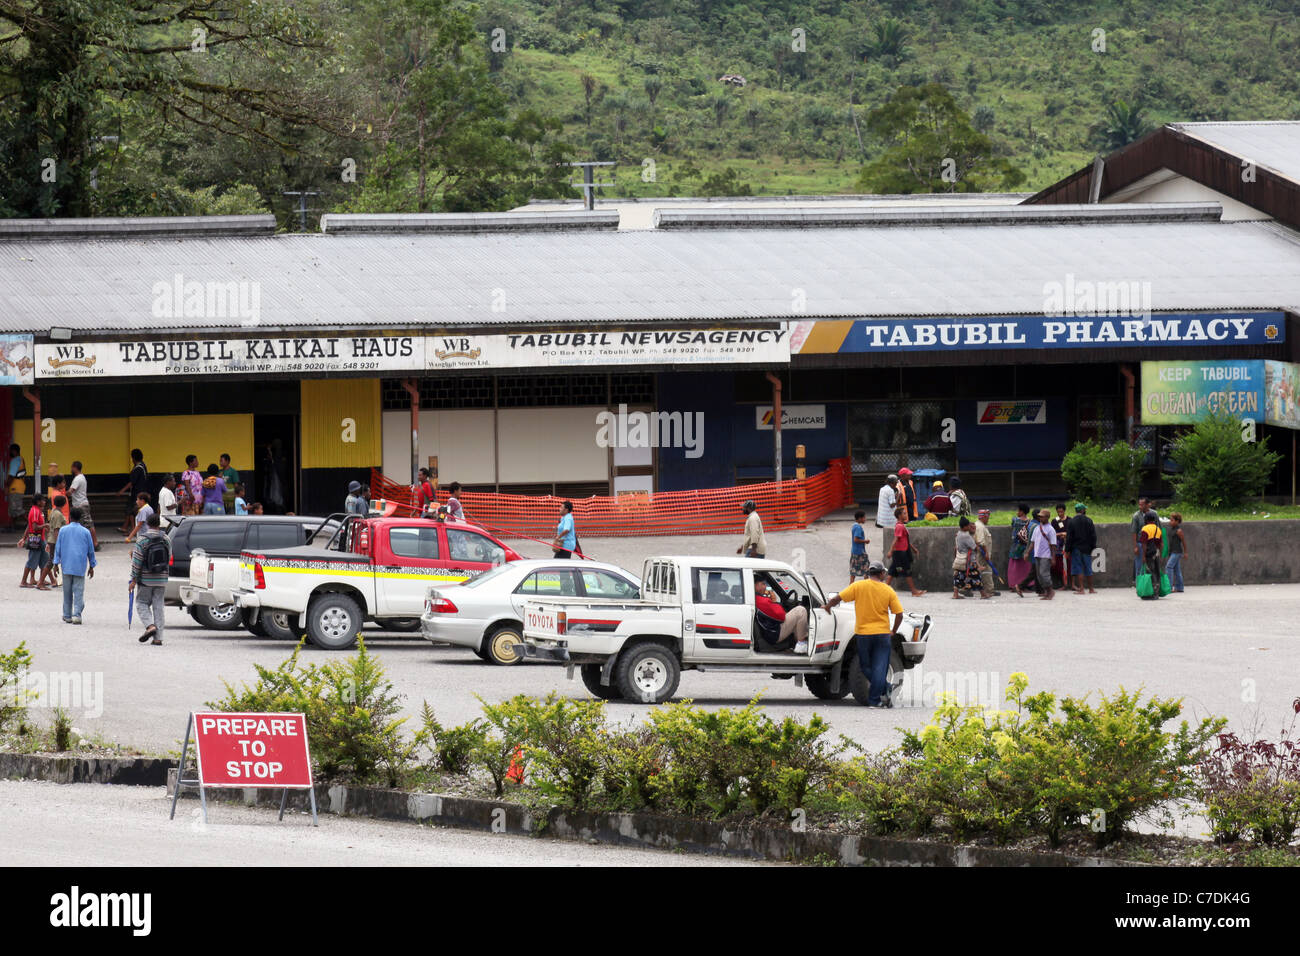 Shopping center in Tabubil, copper mine town in Papua New Guinea´s Western Province - Stock Image